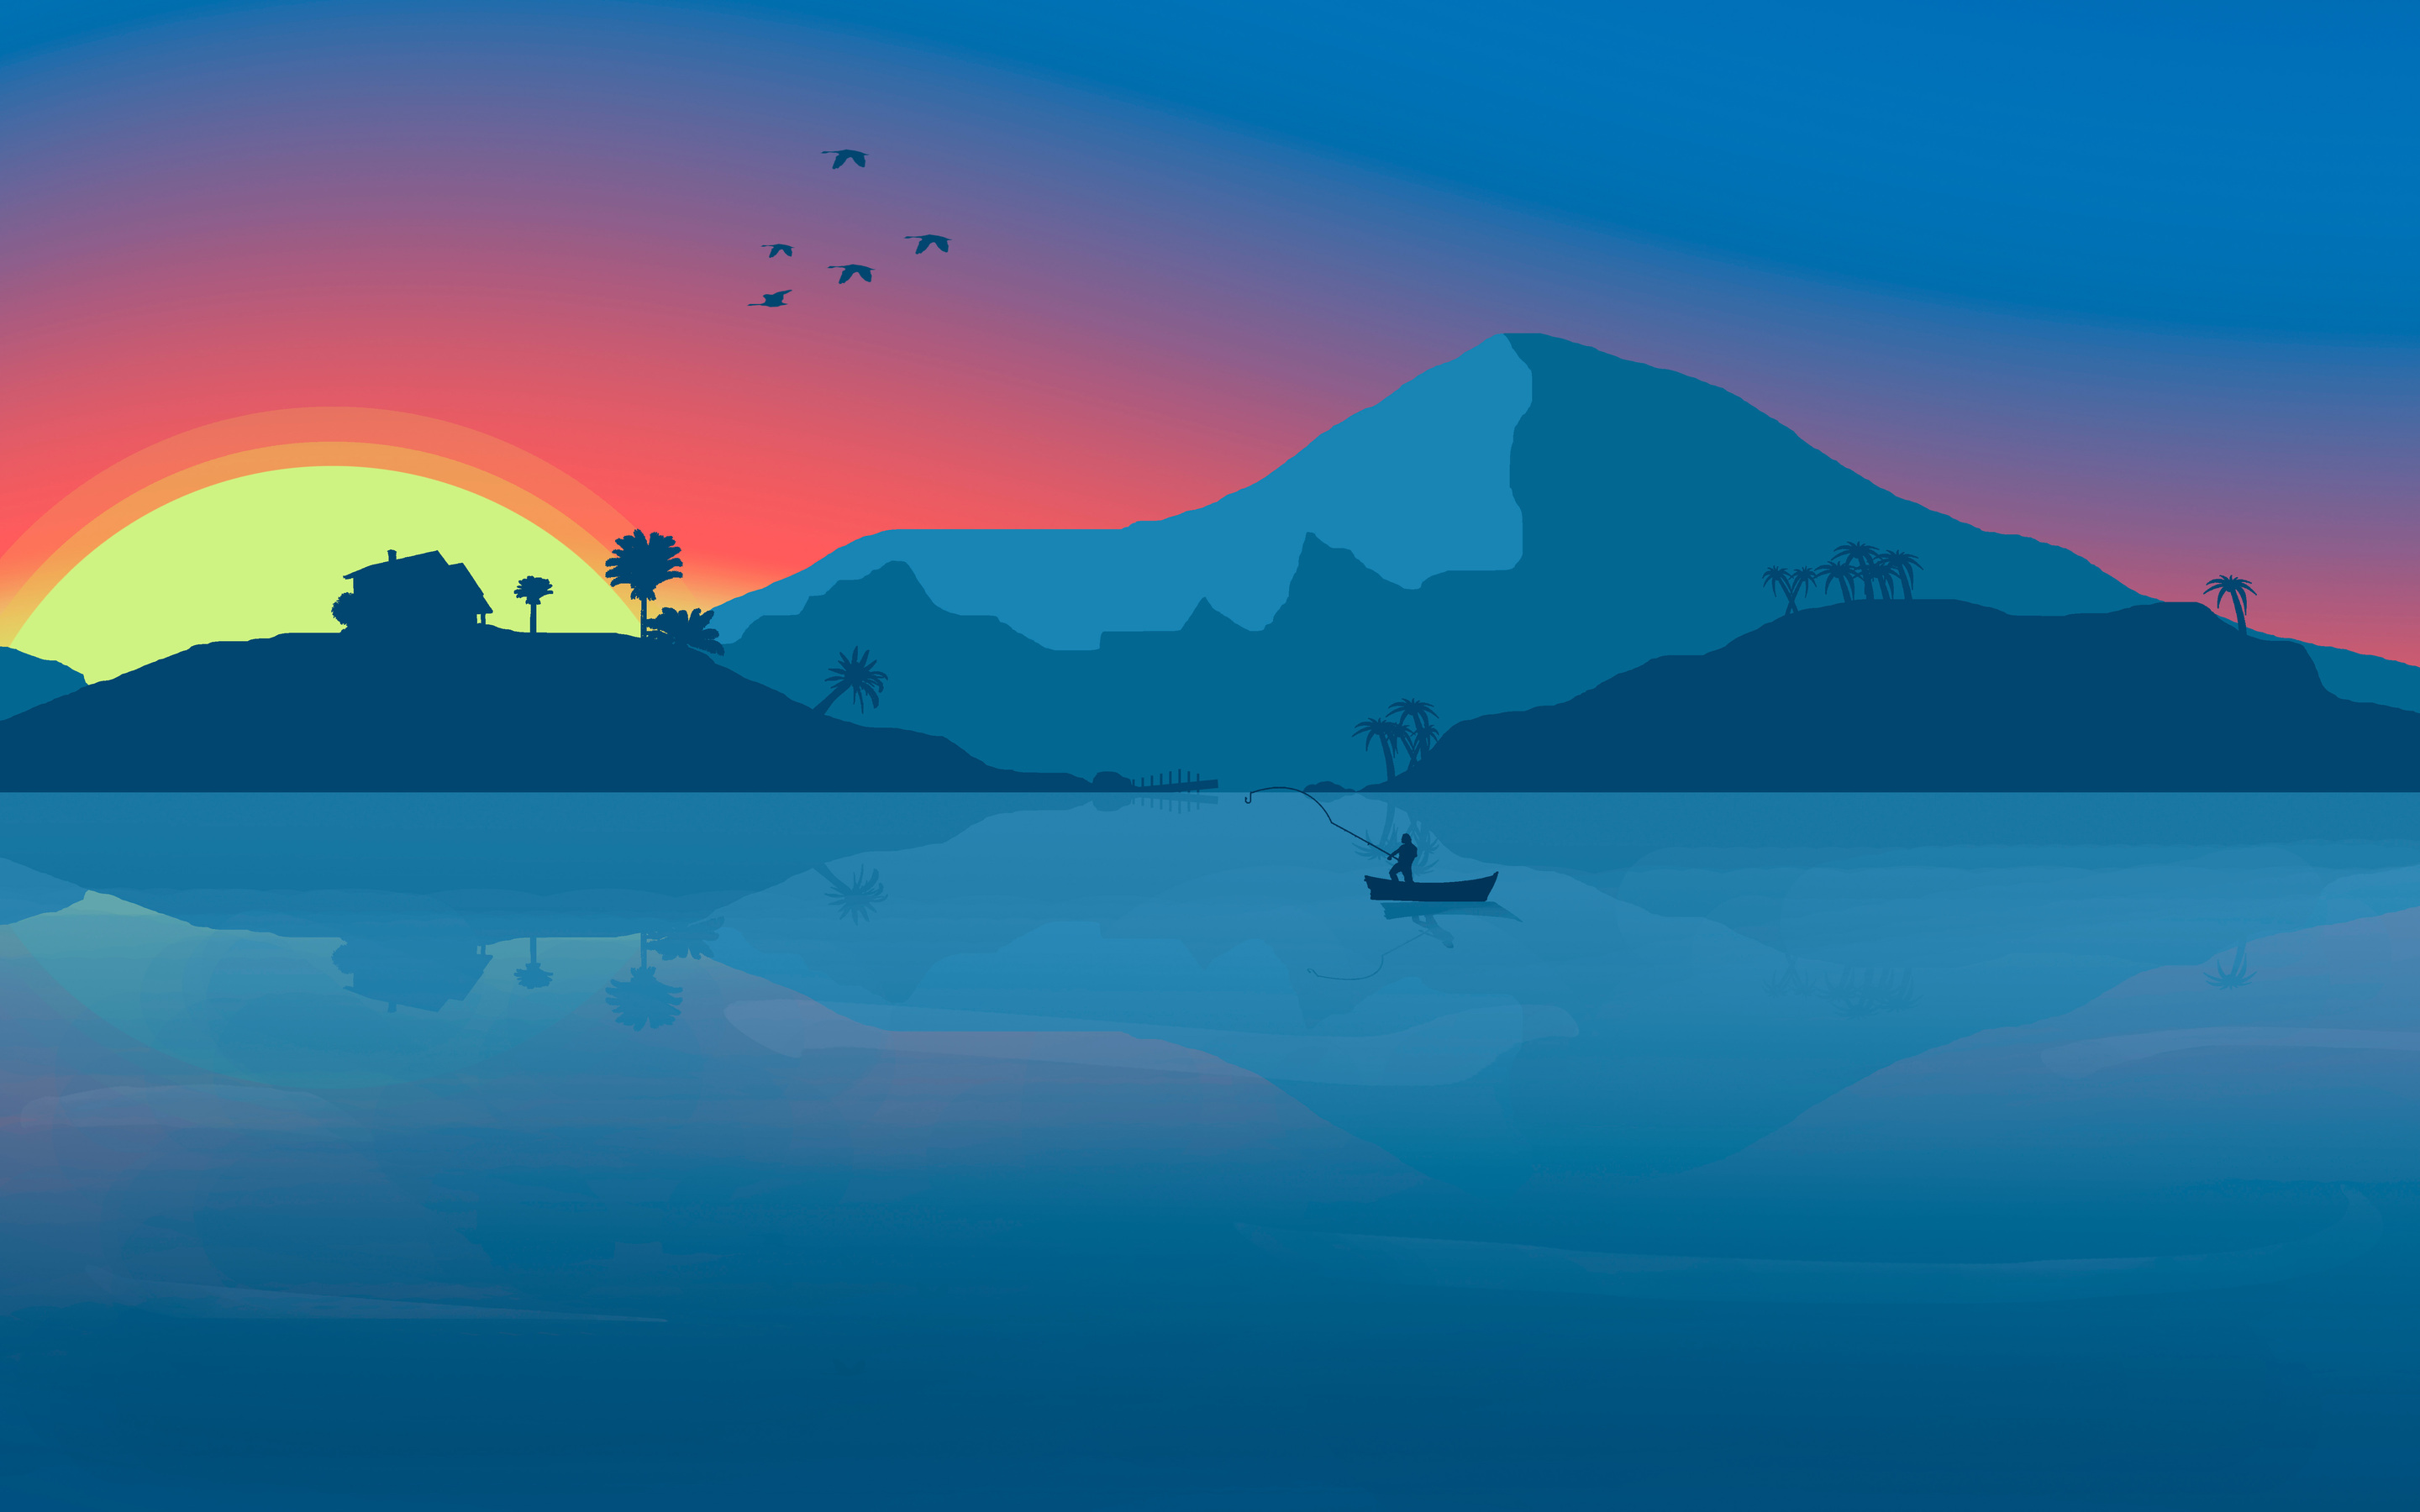 2880x1800 minimalist beach boat mountains sunset birds 8k macbook